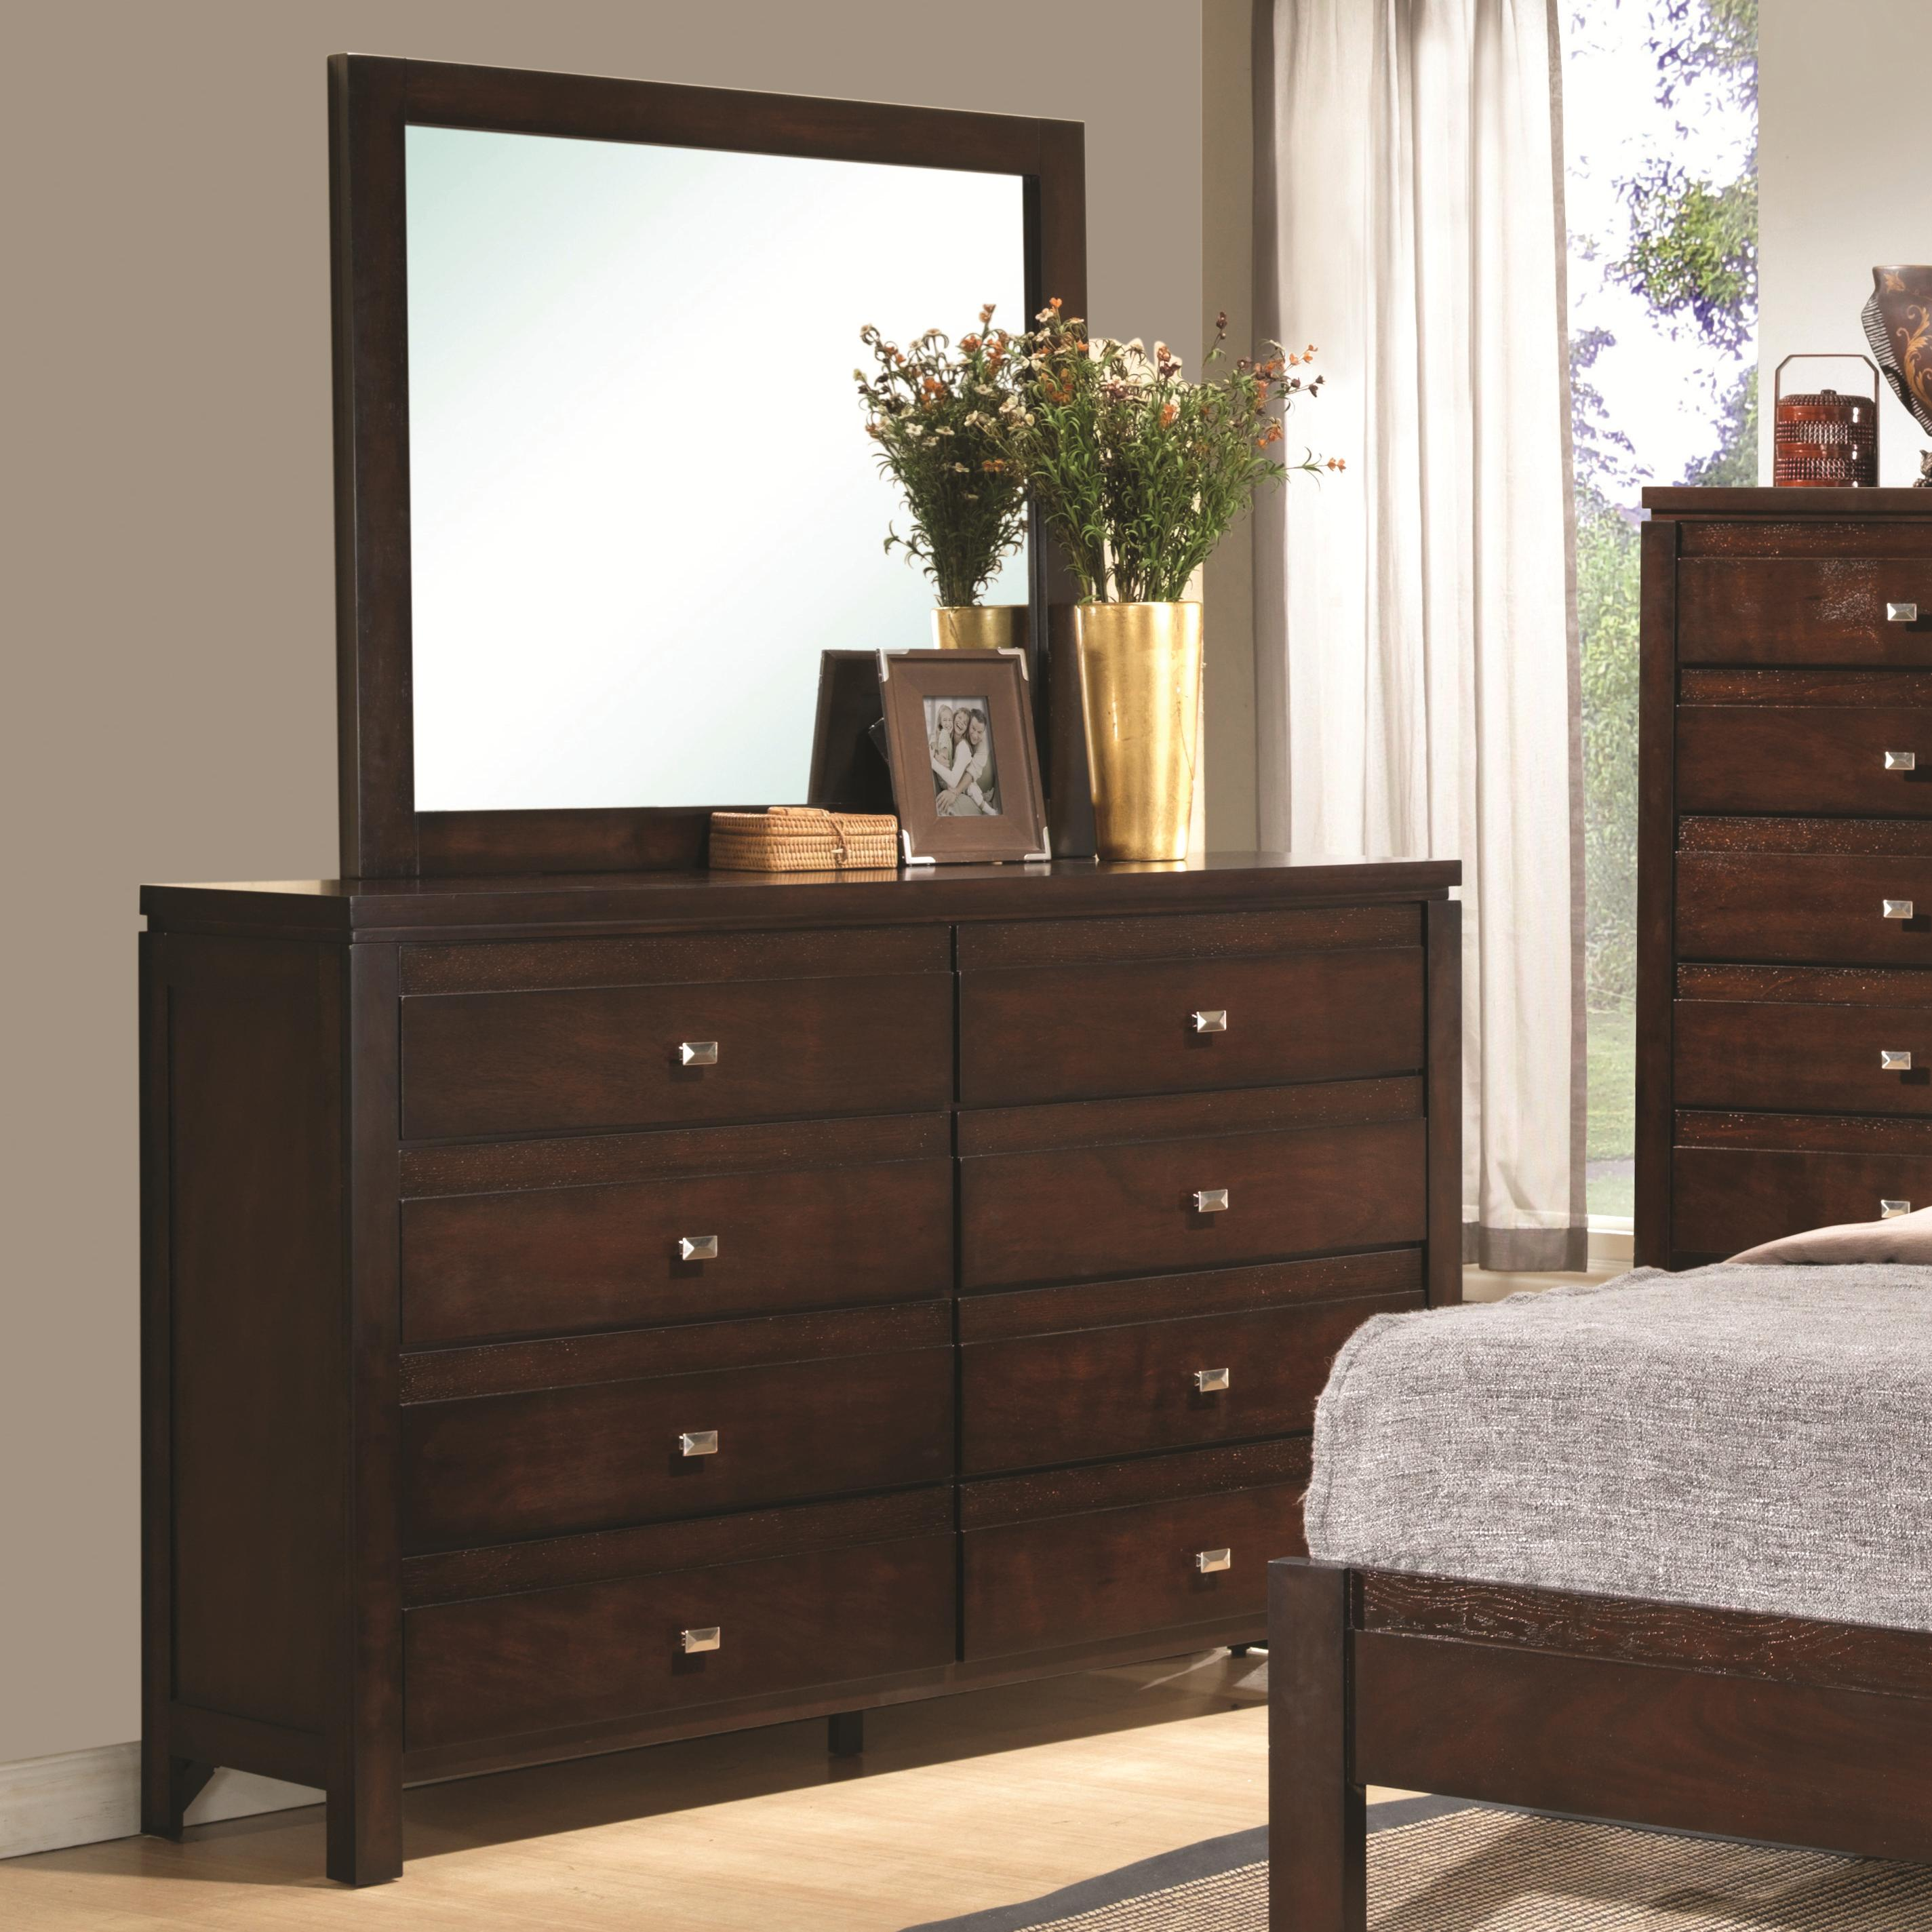 Coaster Cameron Dresser and Mirror Combo - Item Number: 203493+203494